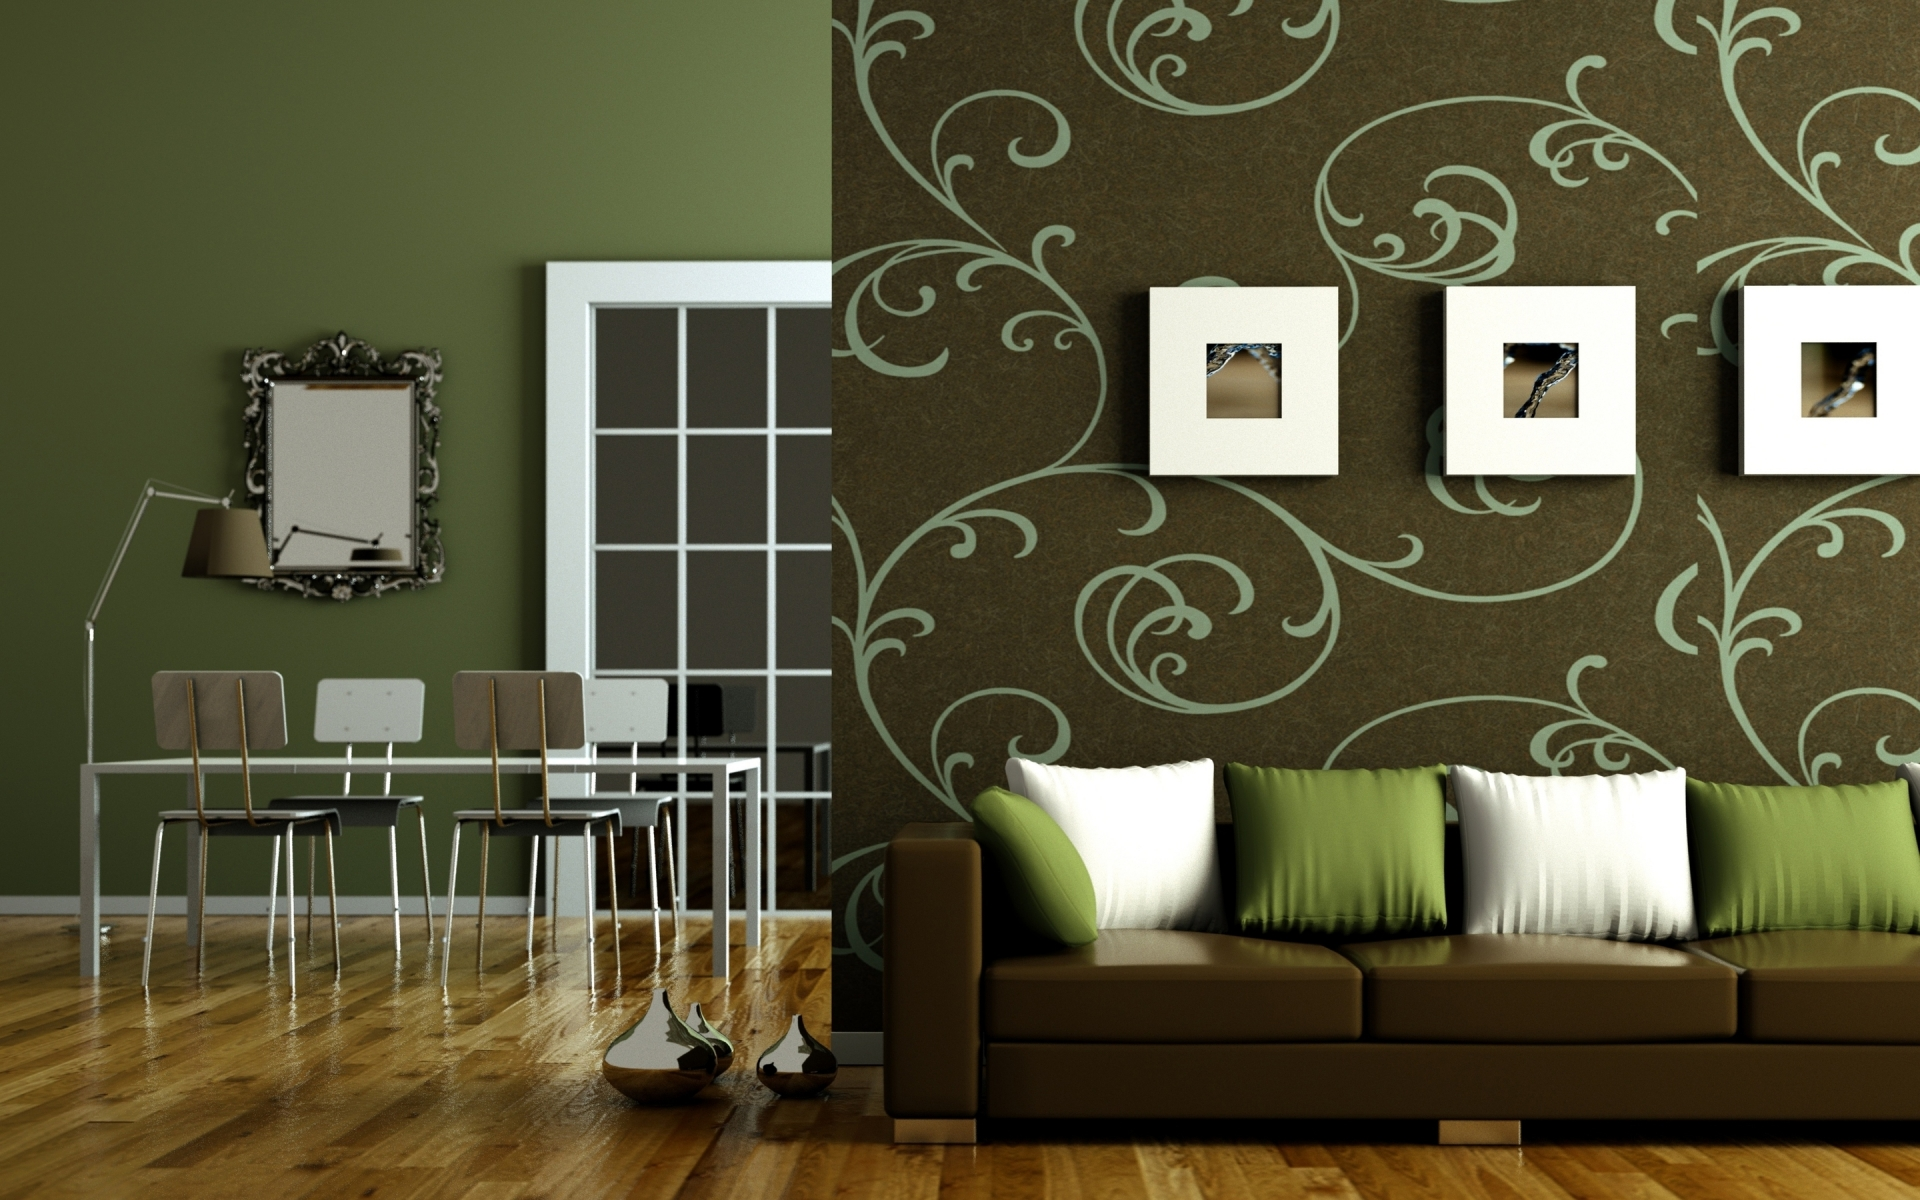 Heres 40 interior design ideas as desktop wallpapers that you can 1920x1200